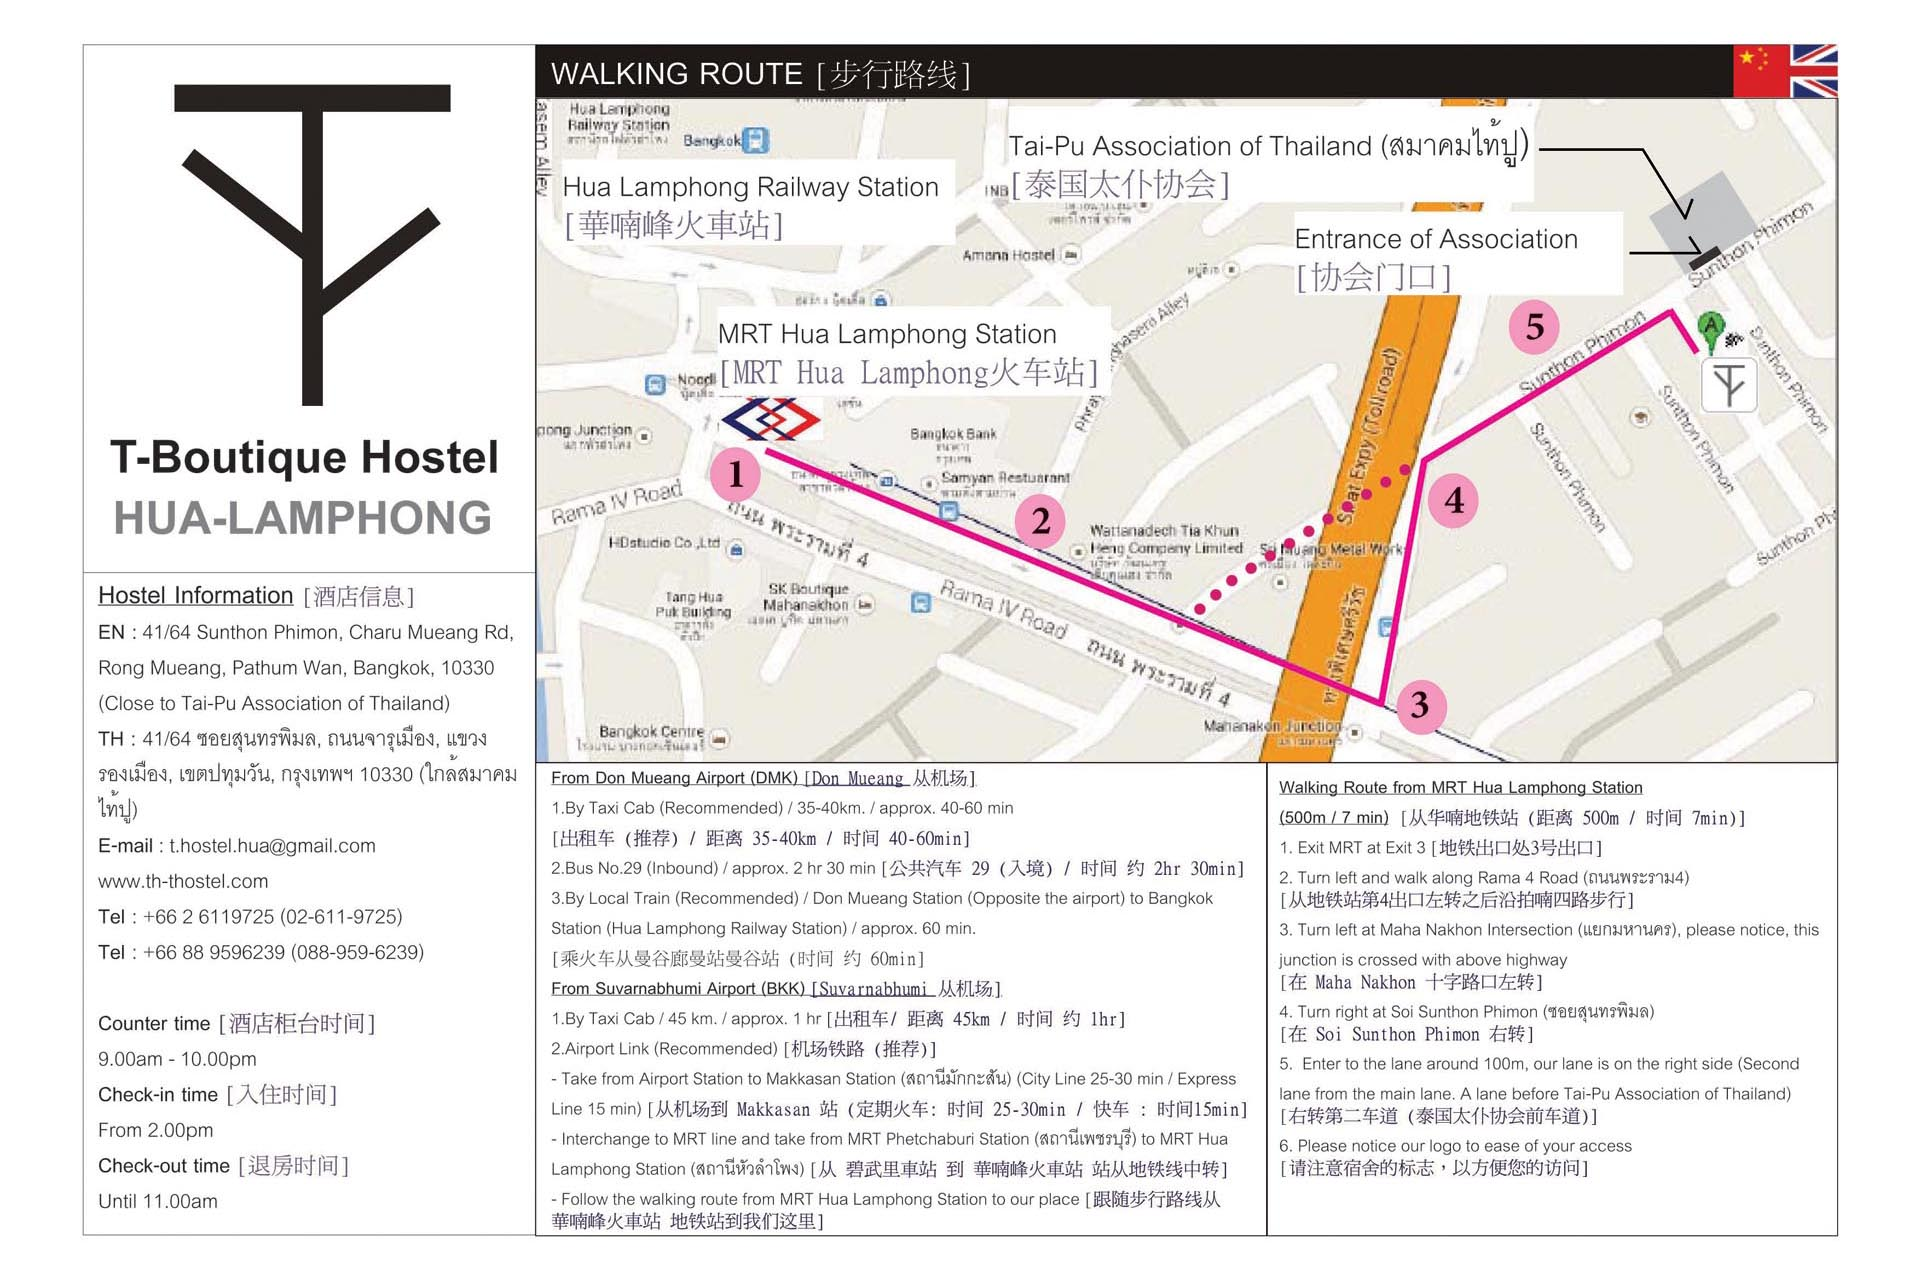 HOSTEL - T-Boutique Hostel (Hua Lamphong)